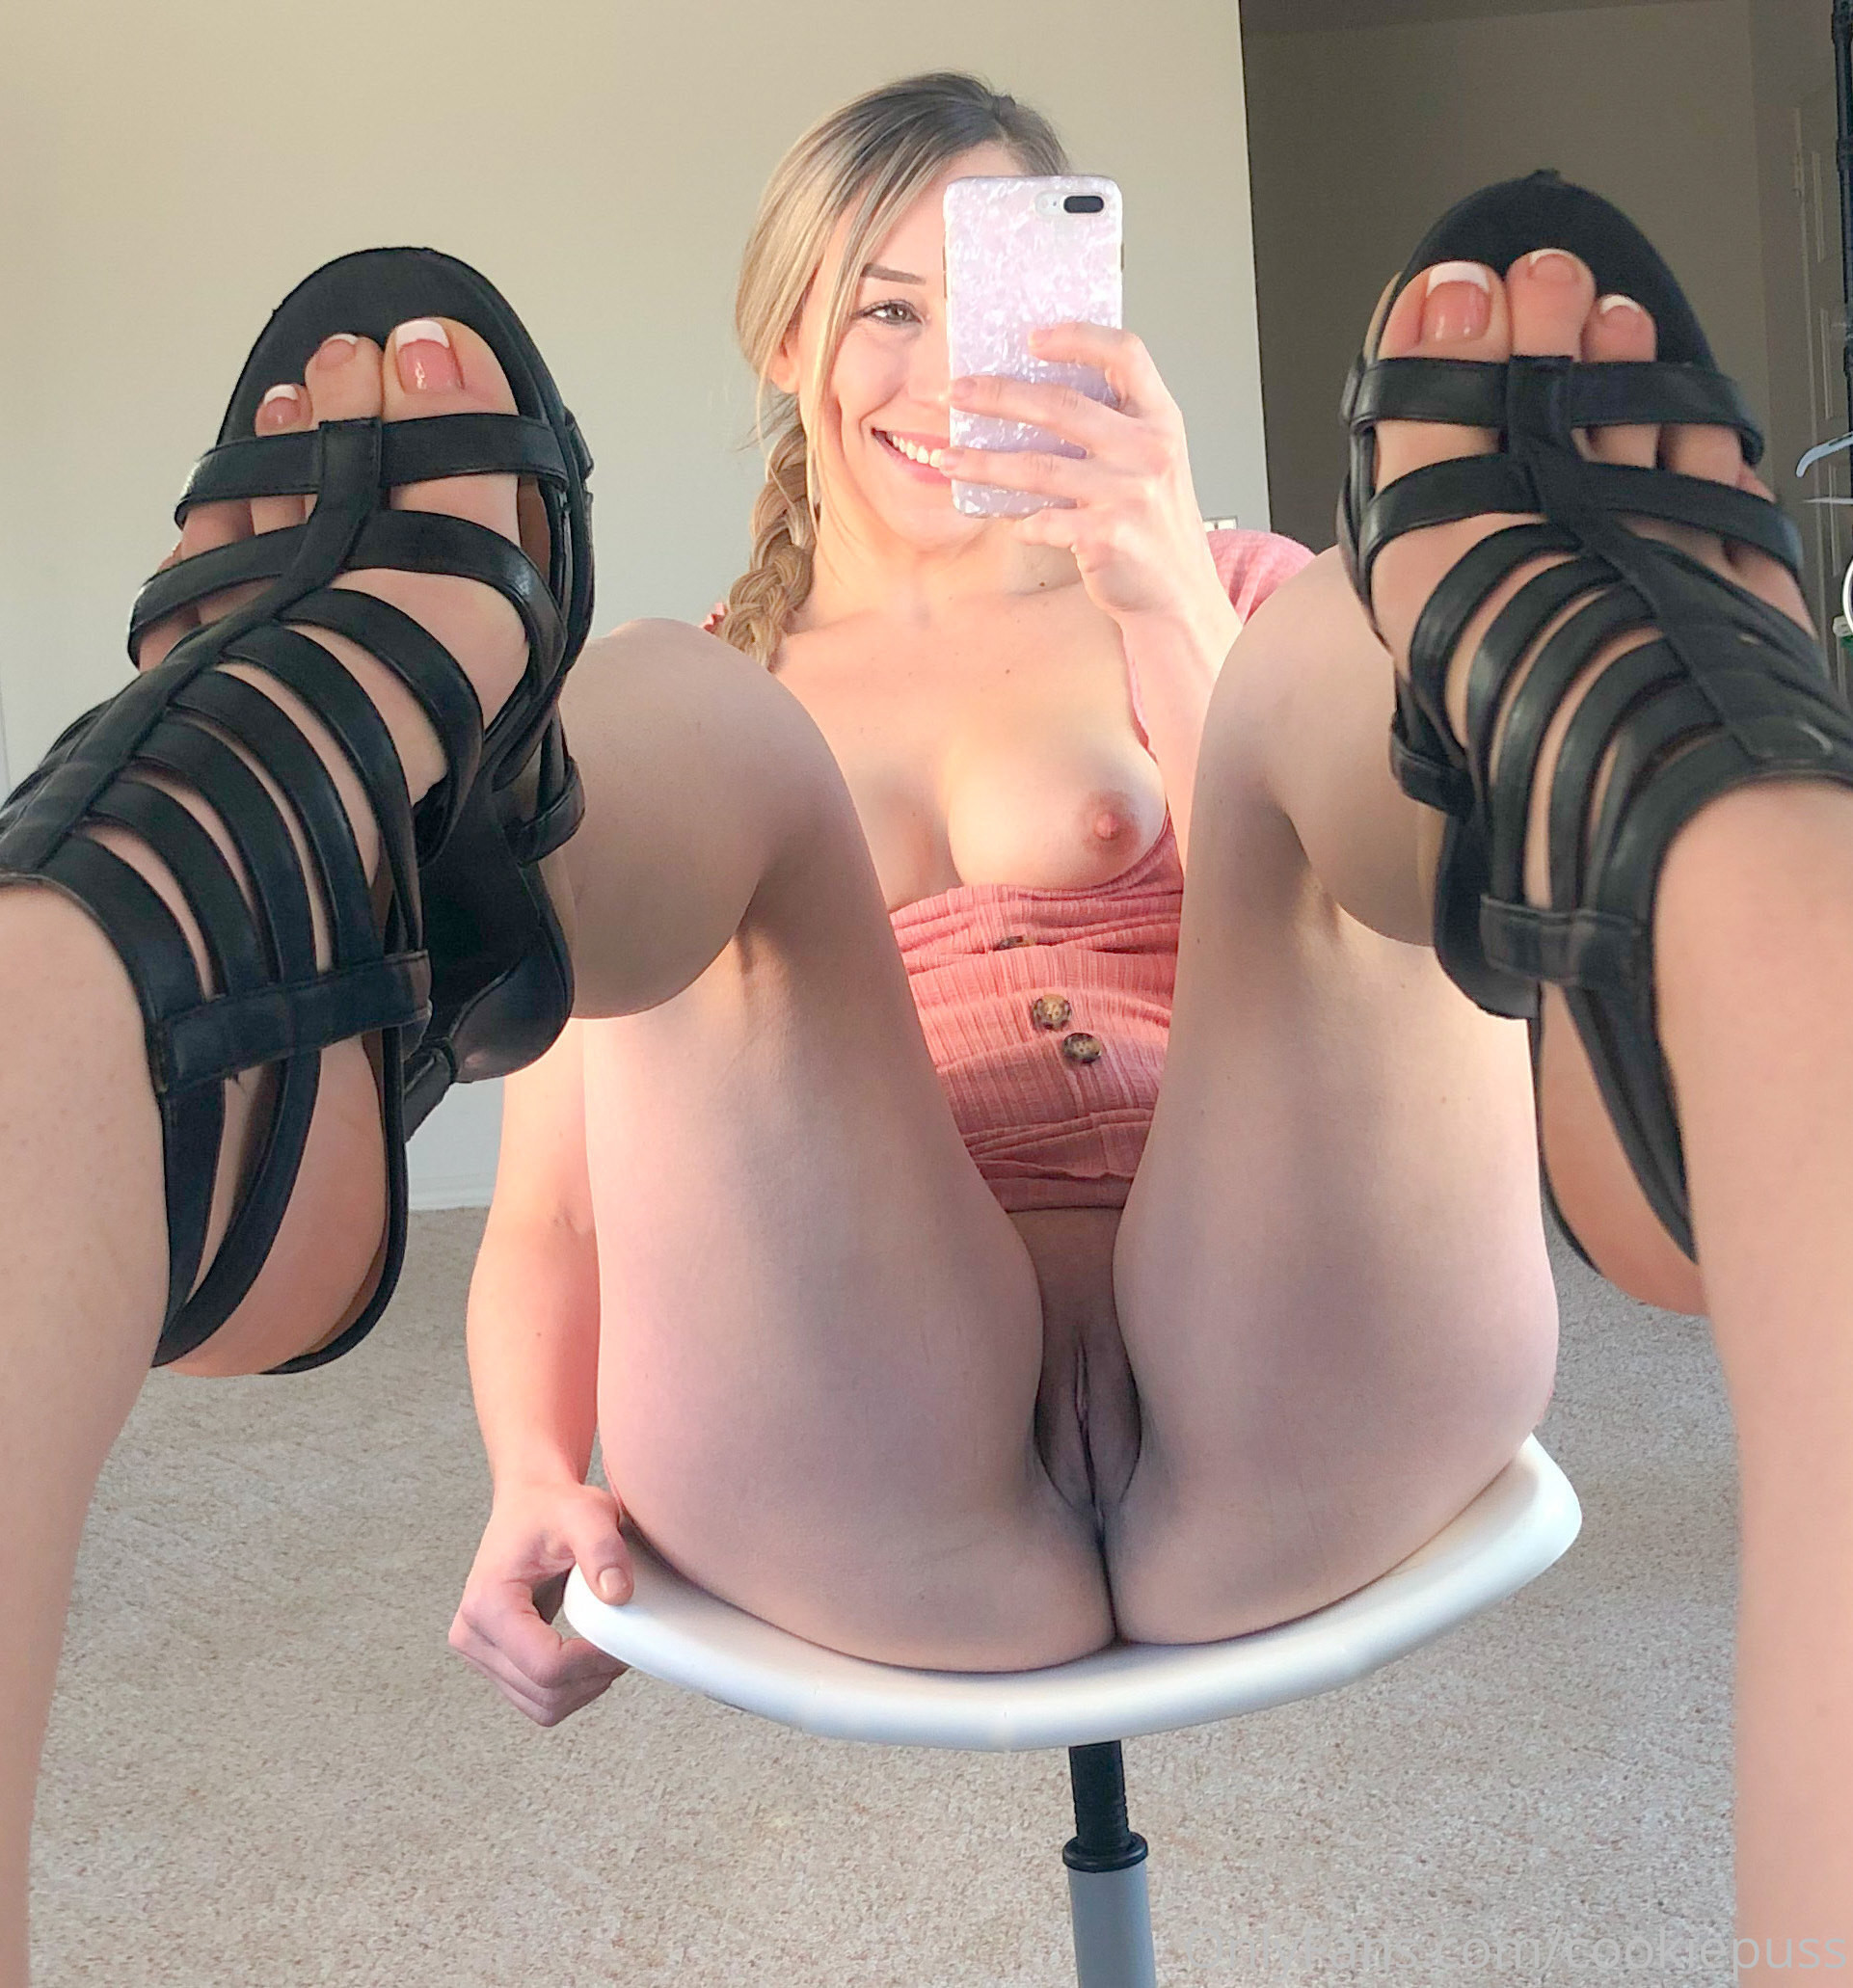 cookiepuss Onlyfans Leaked Nudes fappenings.com 48